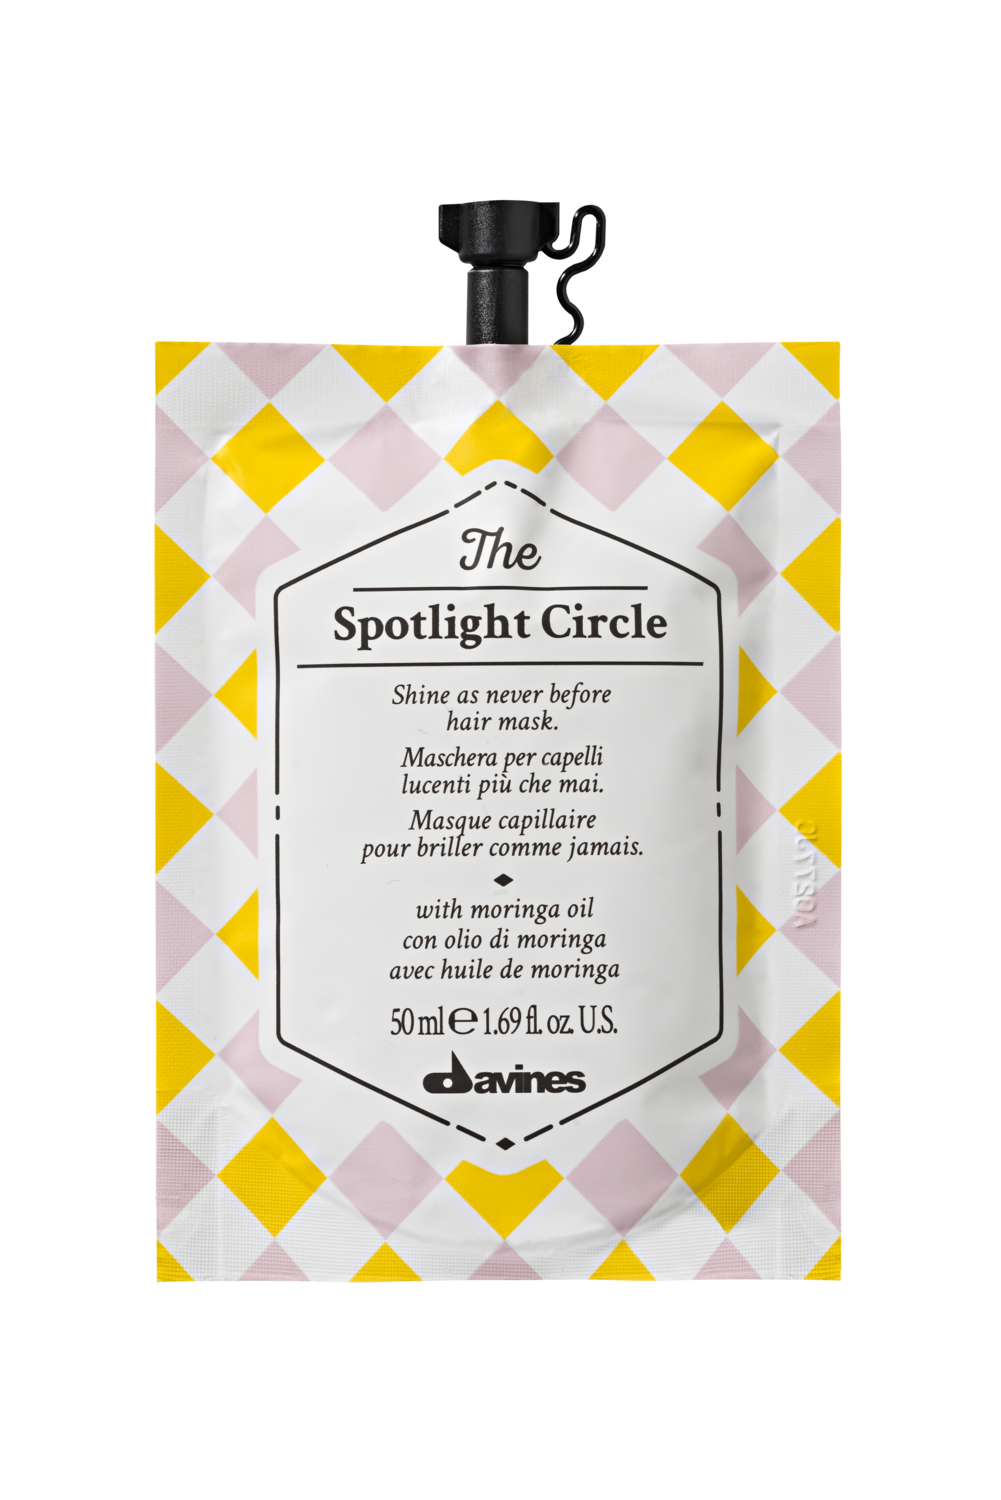 DAVINES THE SPOTLIGHT CIRCLE 50ml